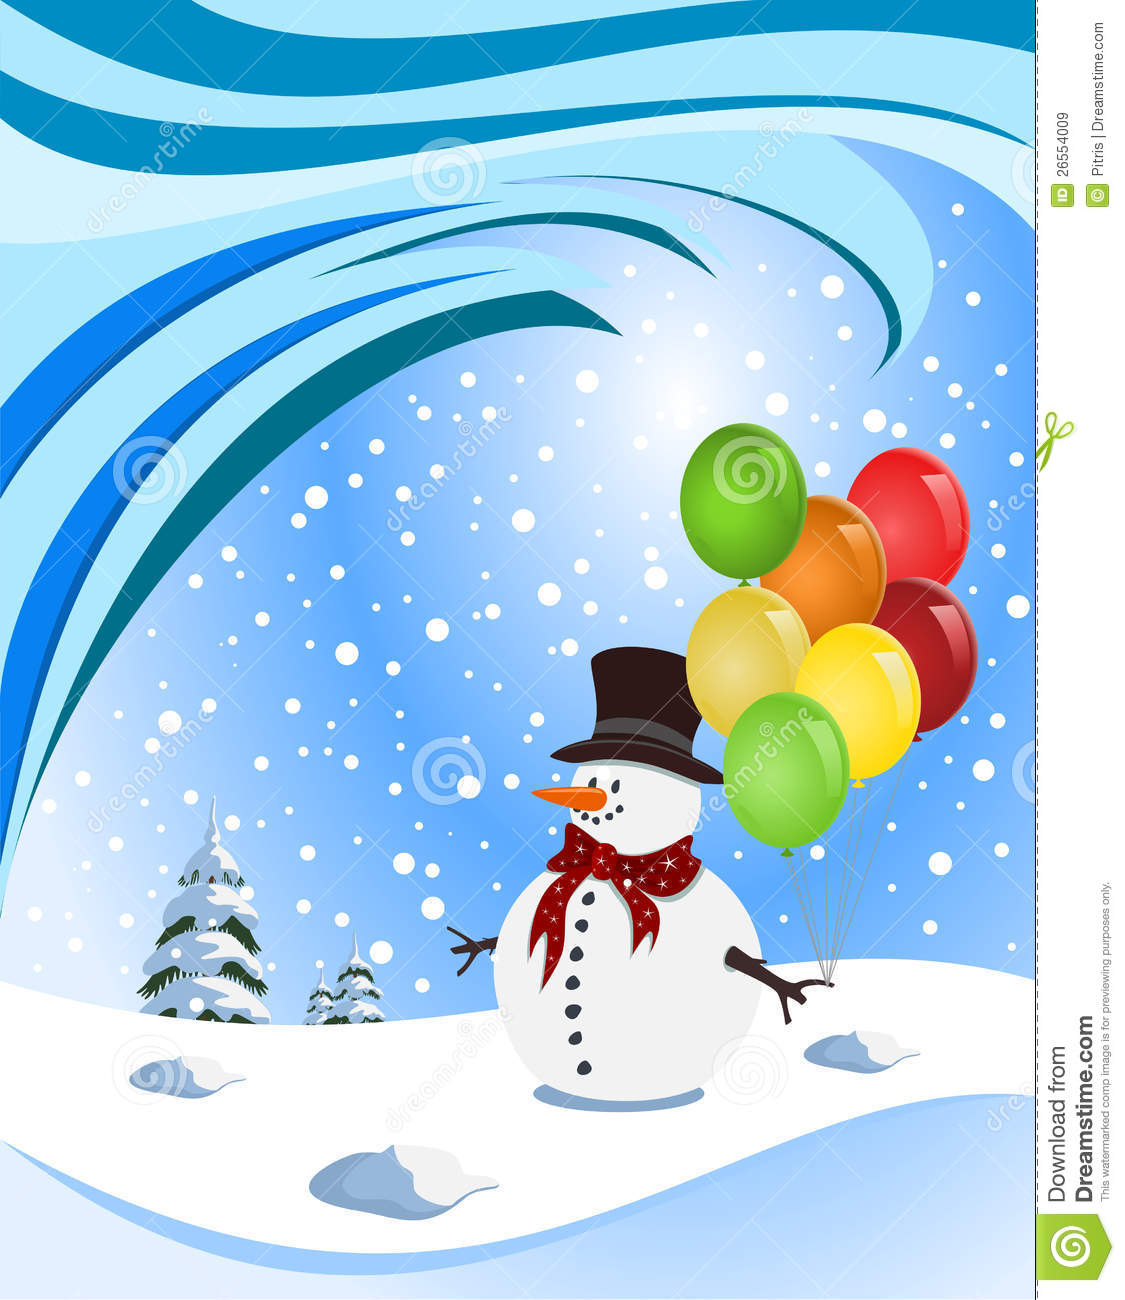 Happy Snowman Holding Colorful Balloons Royalty Free Stock